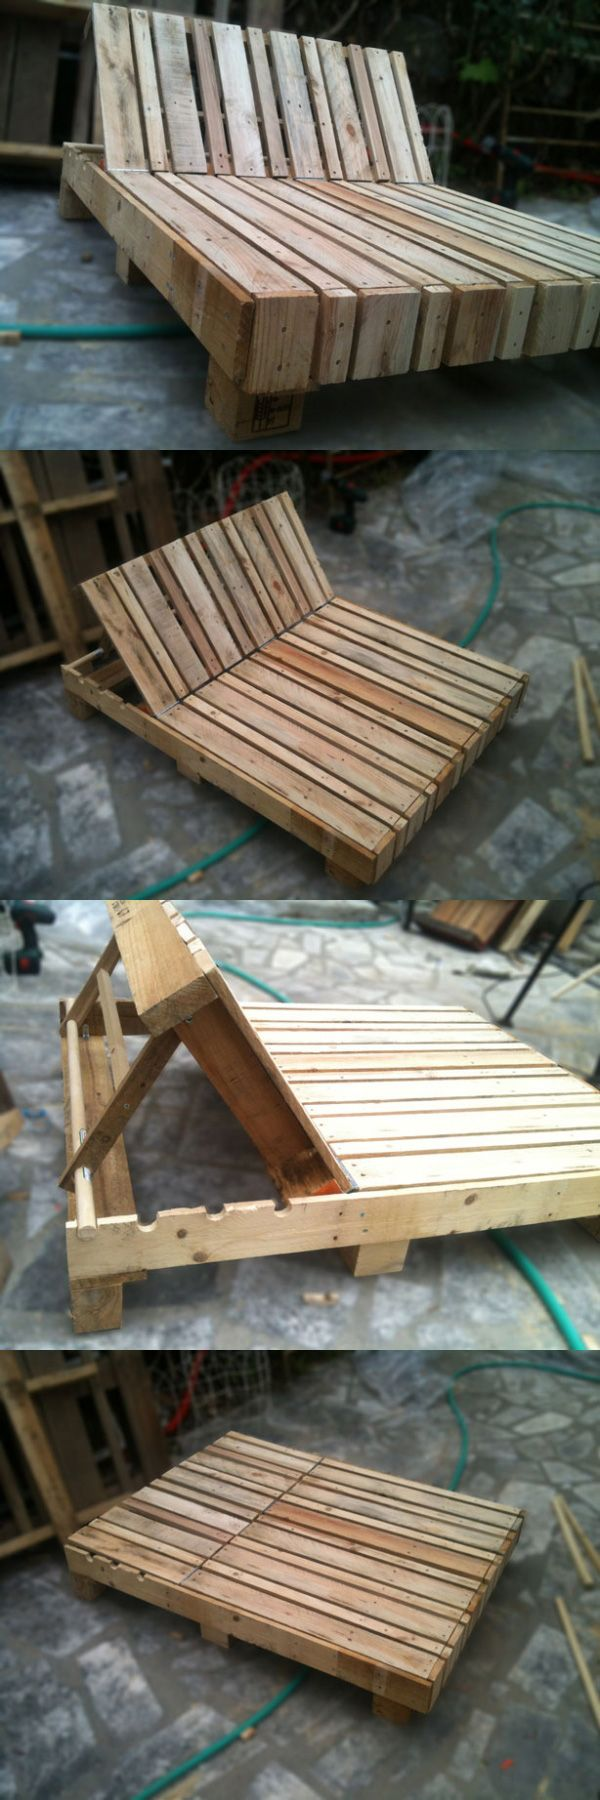 AD-Furniture-You-Can-Create-Using-Old-Pallets-01A